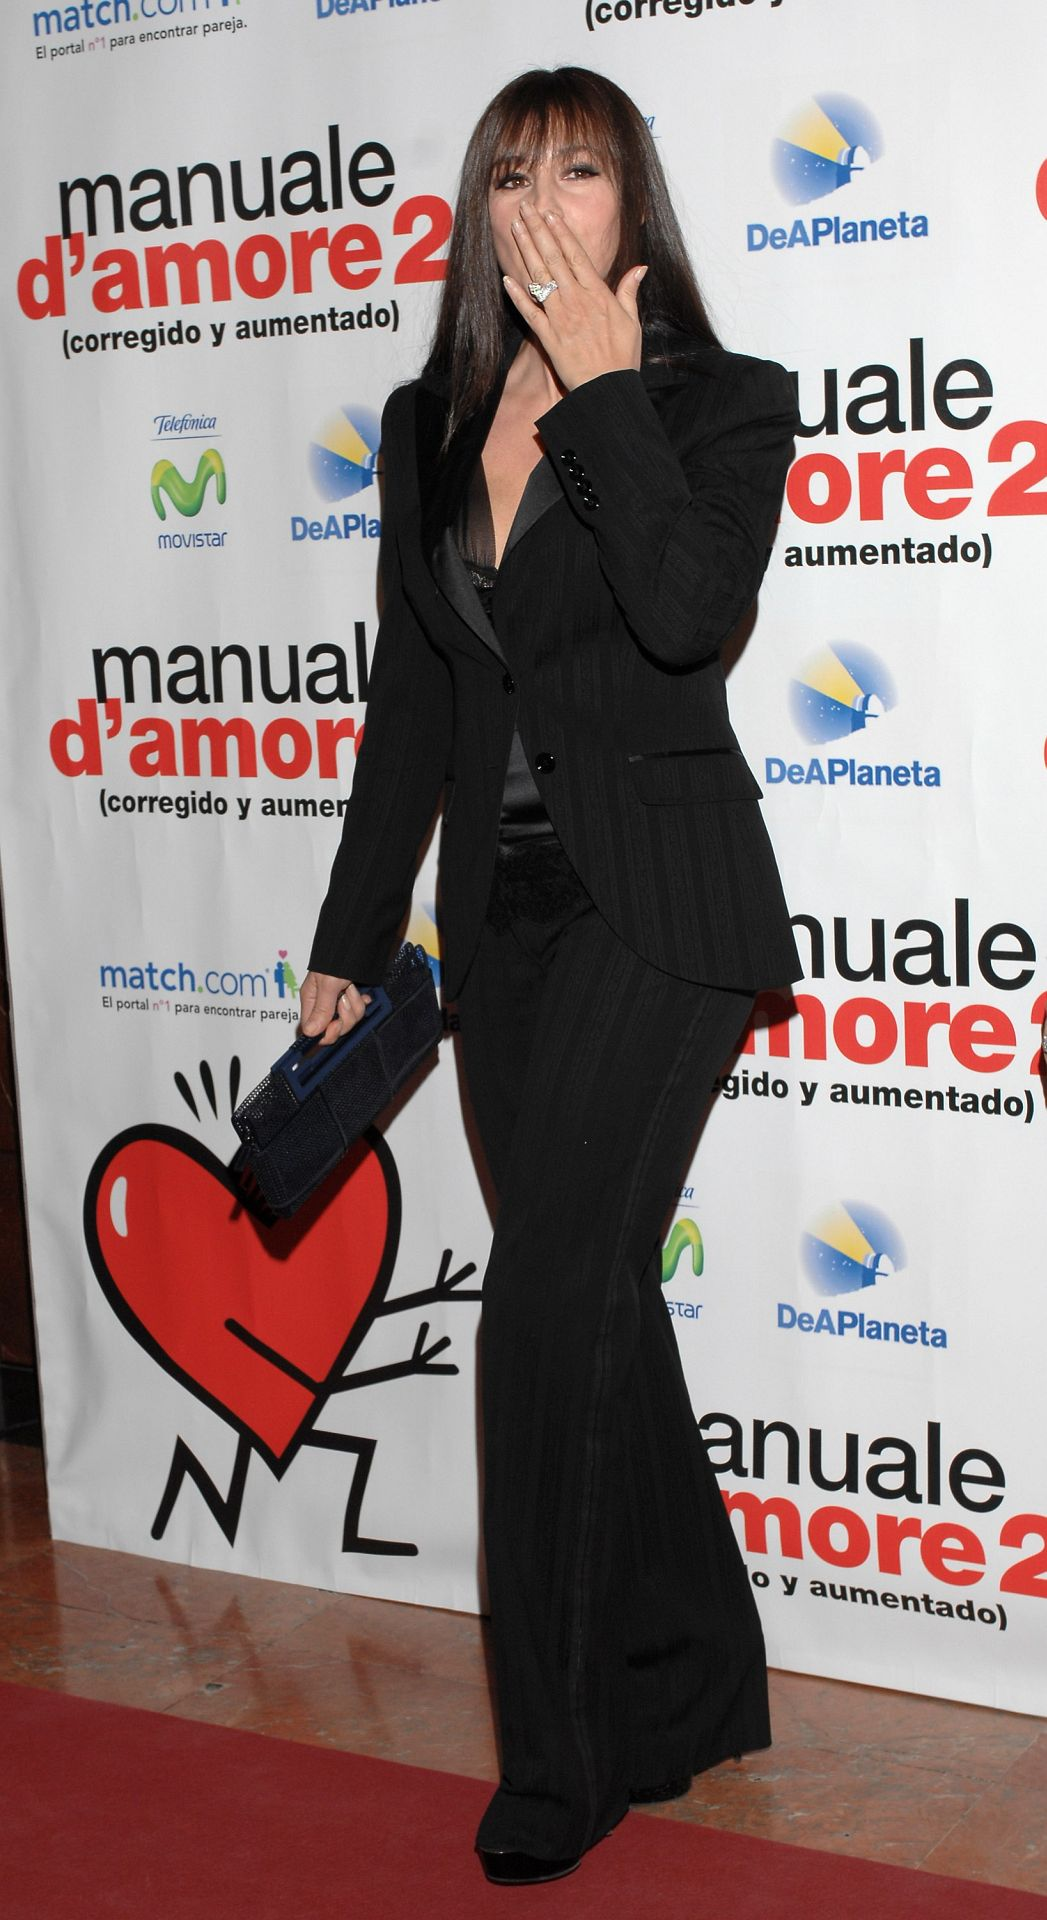 Manuale D'Amore Photo Call